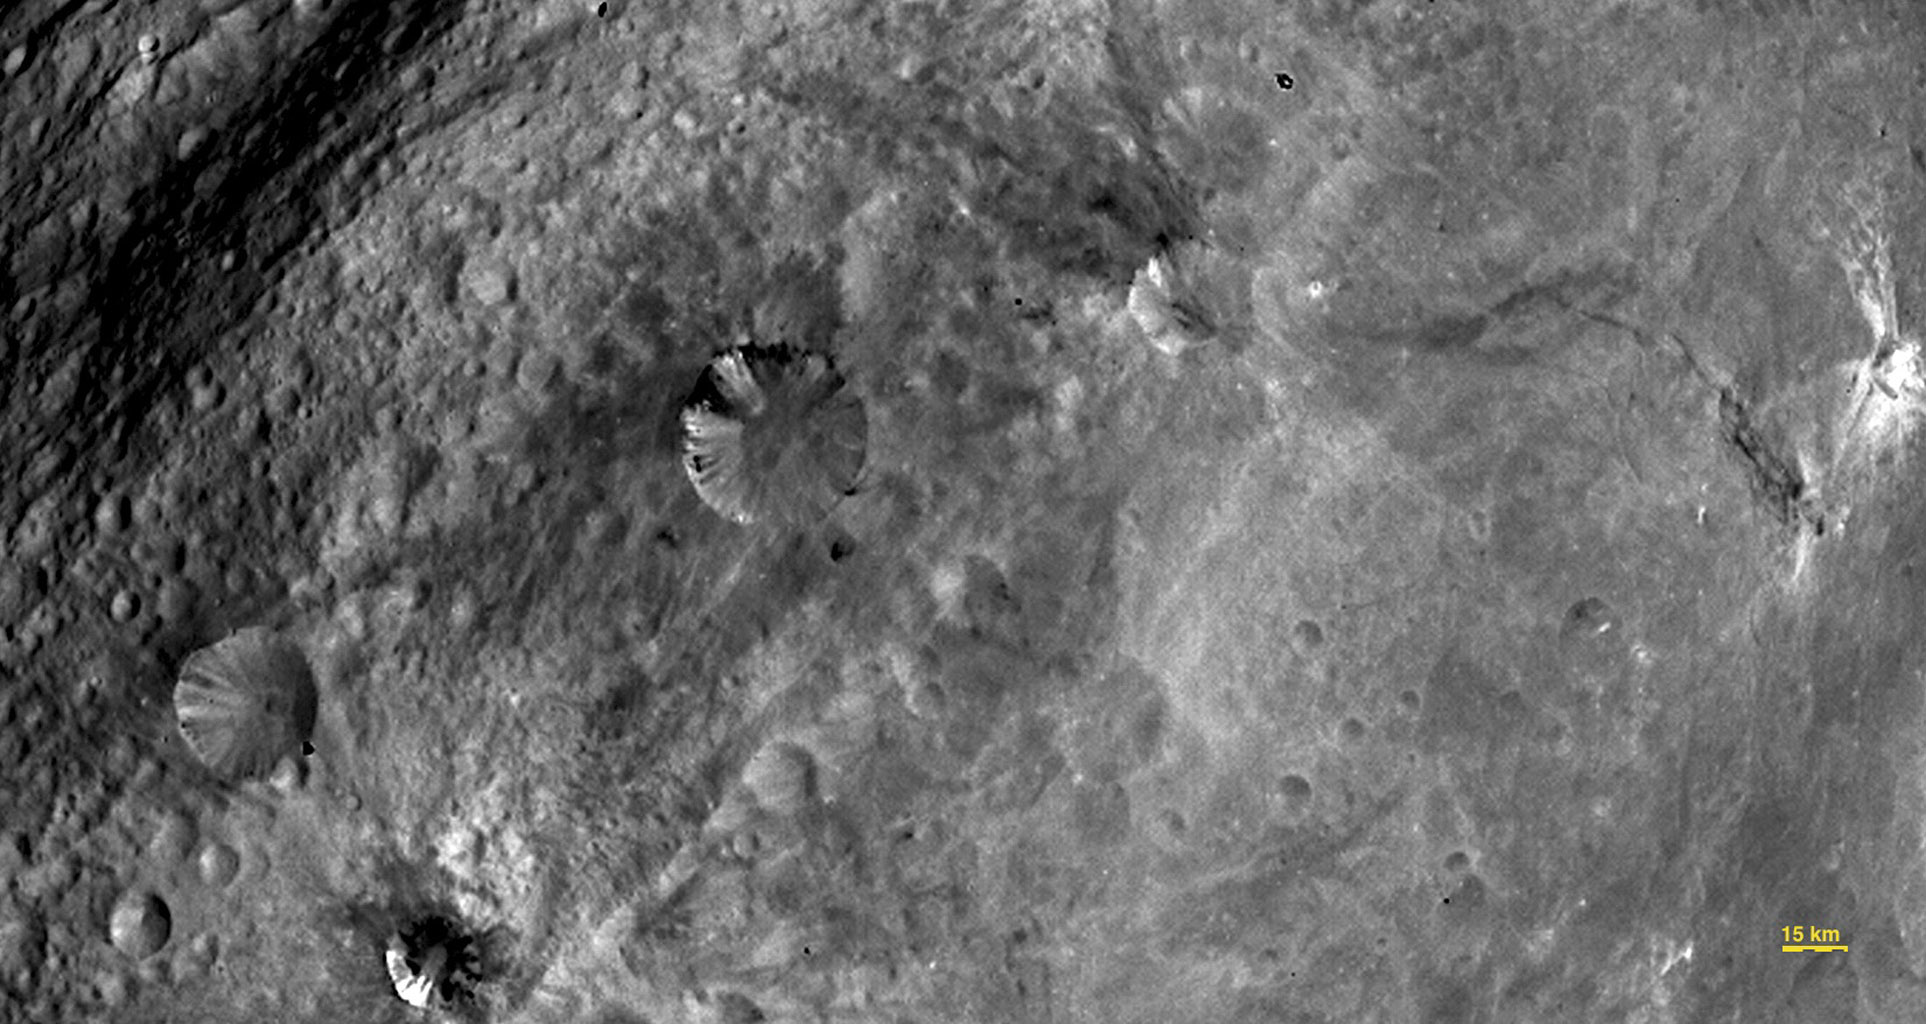 Close-up View of Craters in South Equatorial Region